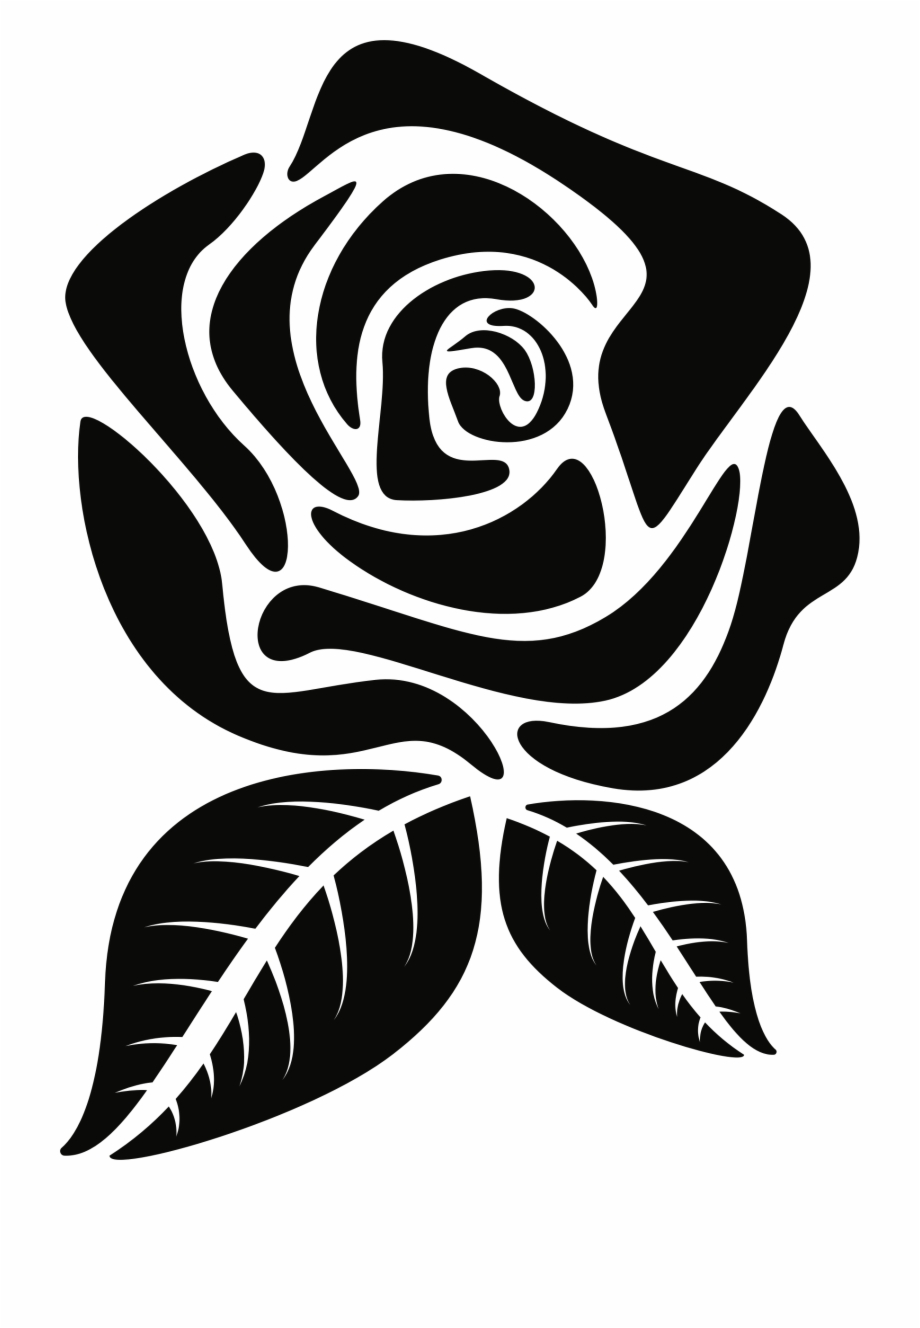 Rose Silhouette Png - Rose Silhouette Png - Rose Flower Silhouette Png Free PNG Images ...